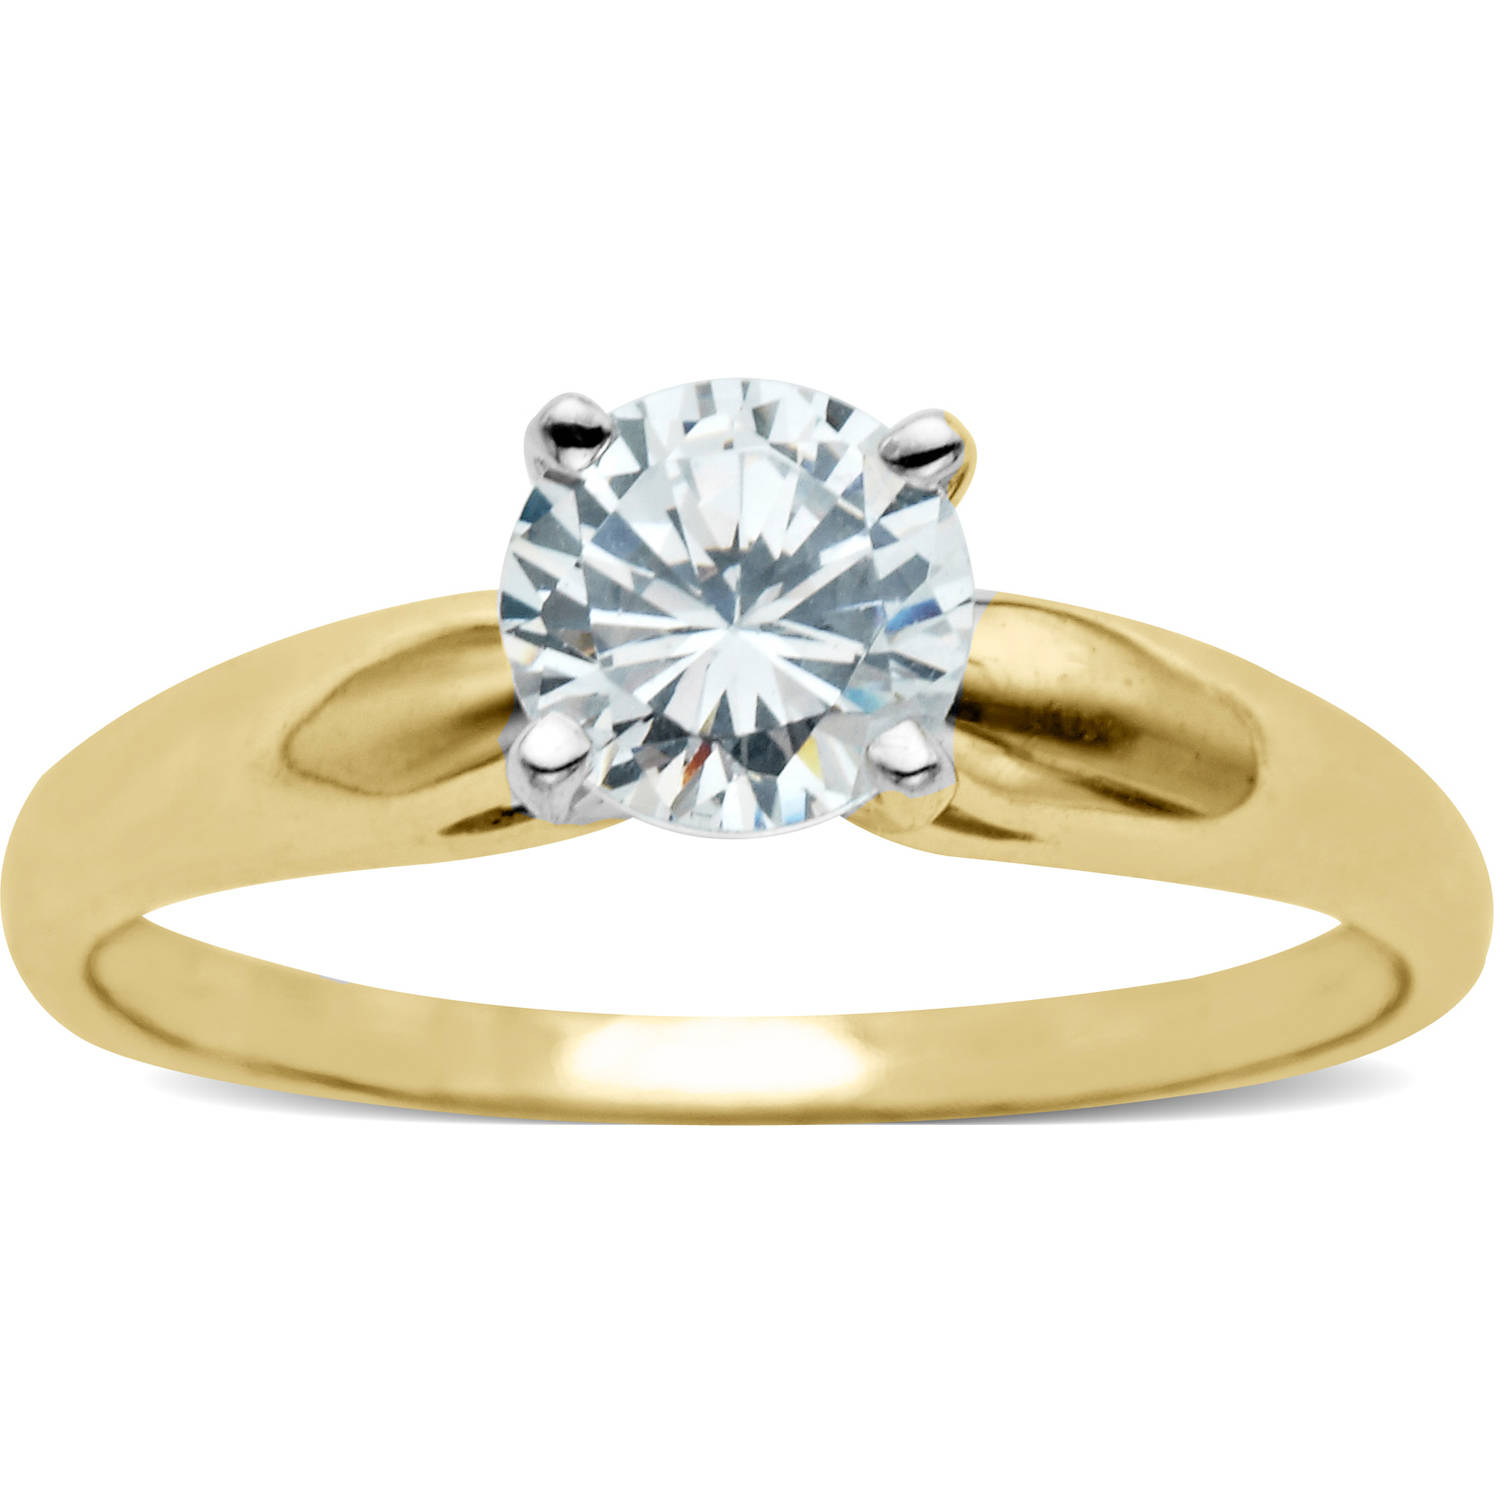 Believe by Brilliance .75 Carat T.G.W. CZ Round Solitaire 10kt Yellow Gold Engagement Ring